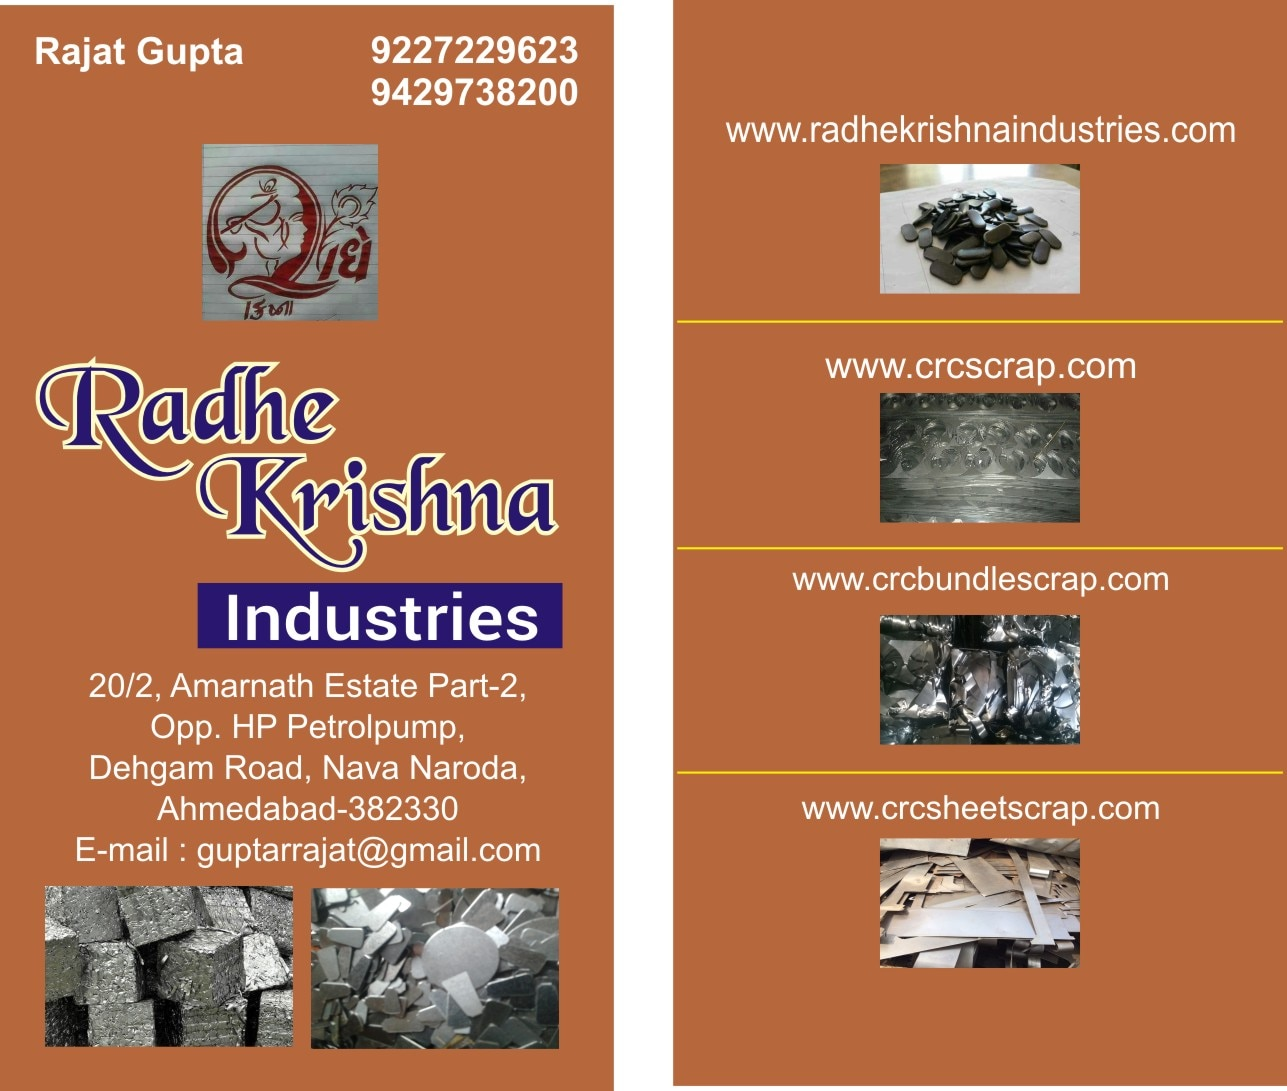 Logo of Radhe Krishna Industries